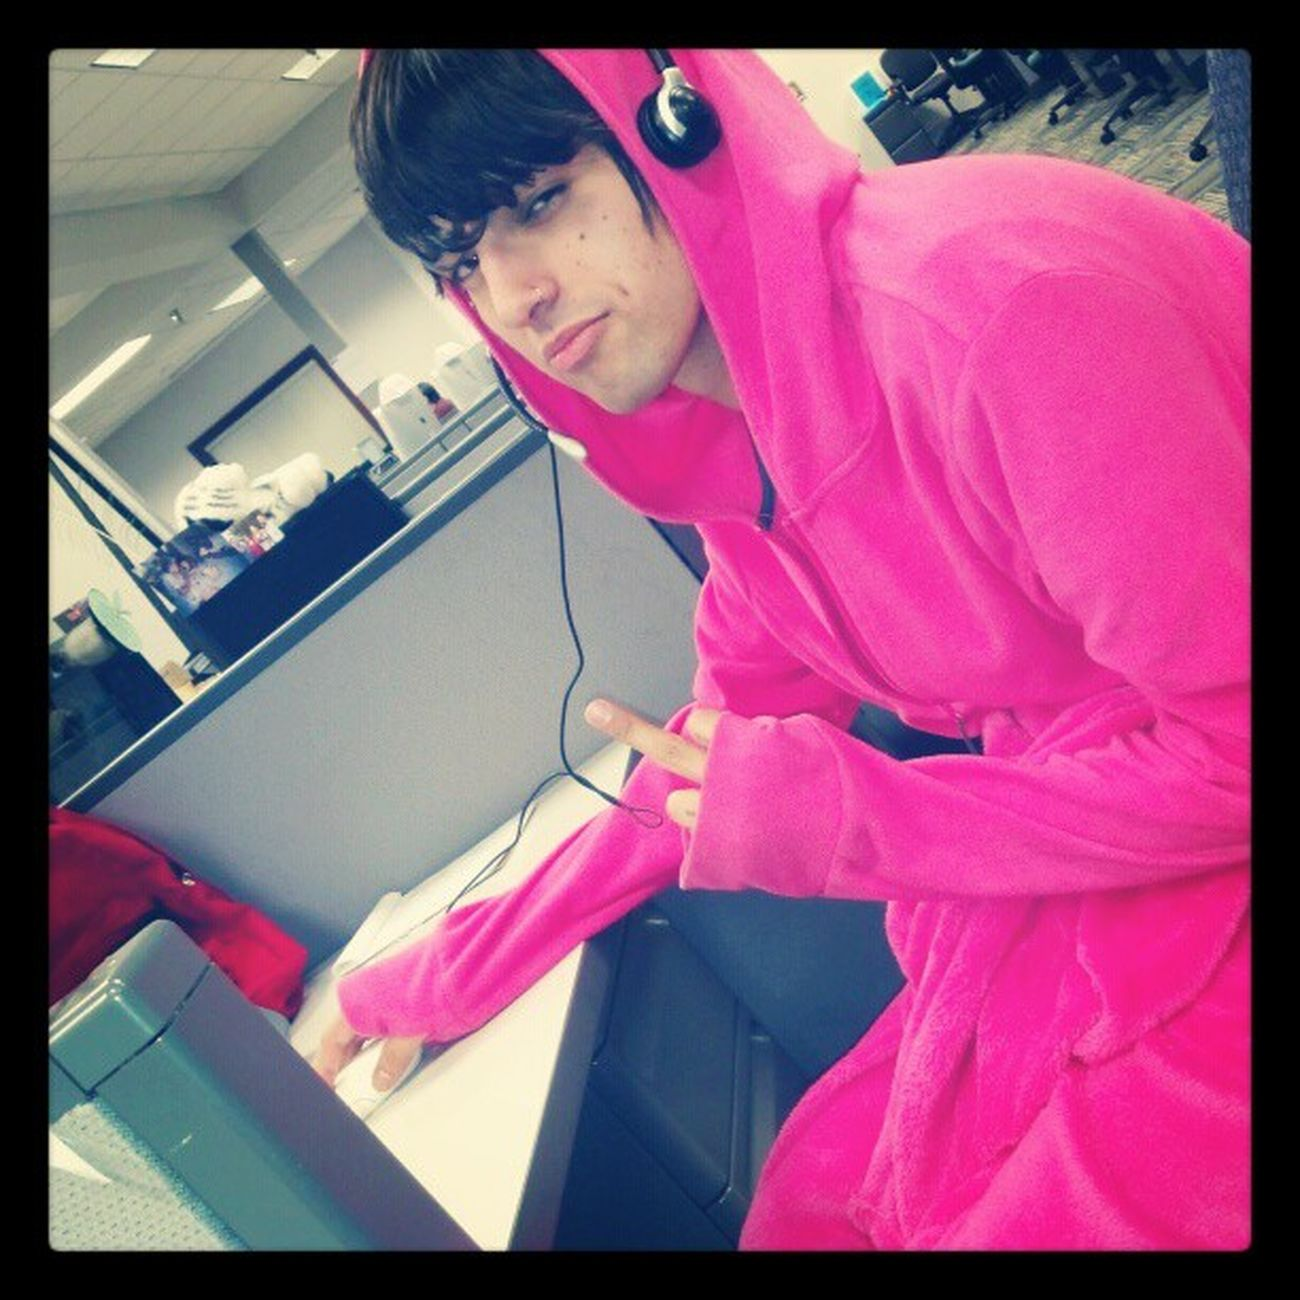 @geofromtexas being warm in a pink snuggie, lulz Cute woohoo AppleCare